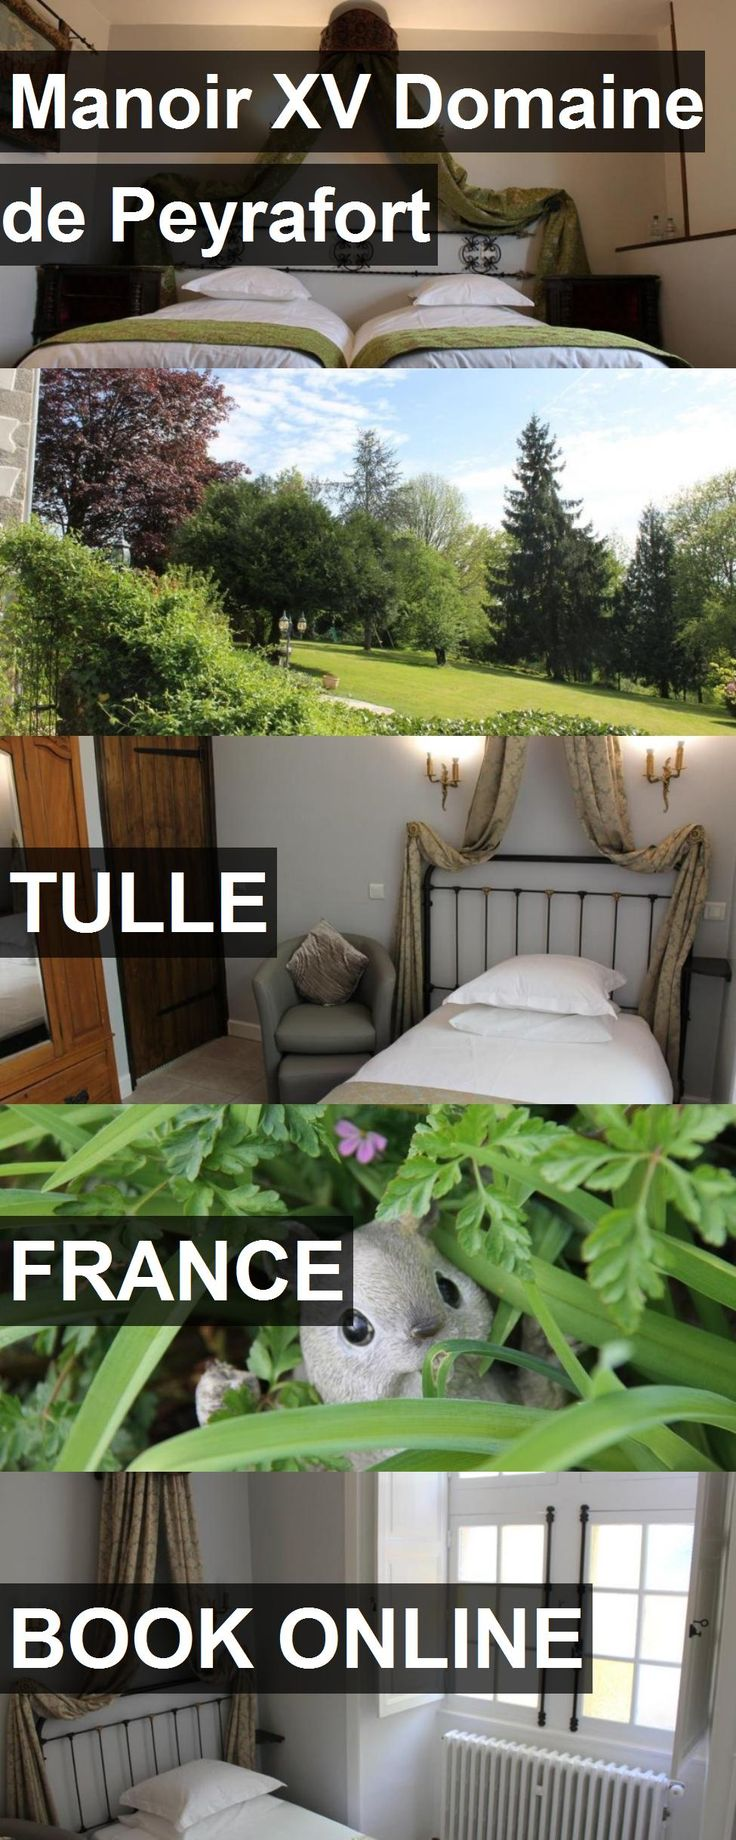 Hotel Manoir XV Domaine de Peyrafort in Tulle, France. For more information, photos, reviews and best prices please follow the link. #France #Tulle #travel #vacation #hotel